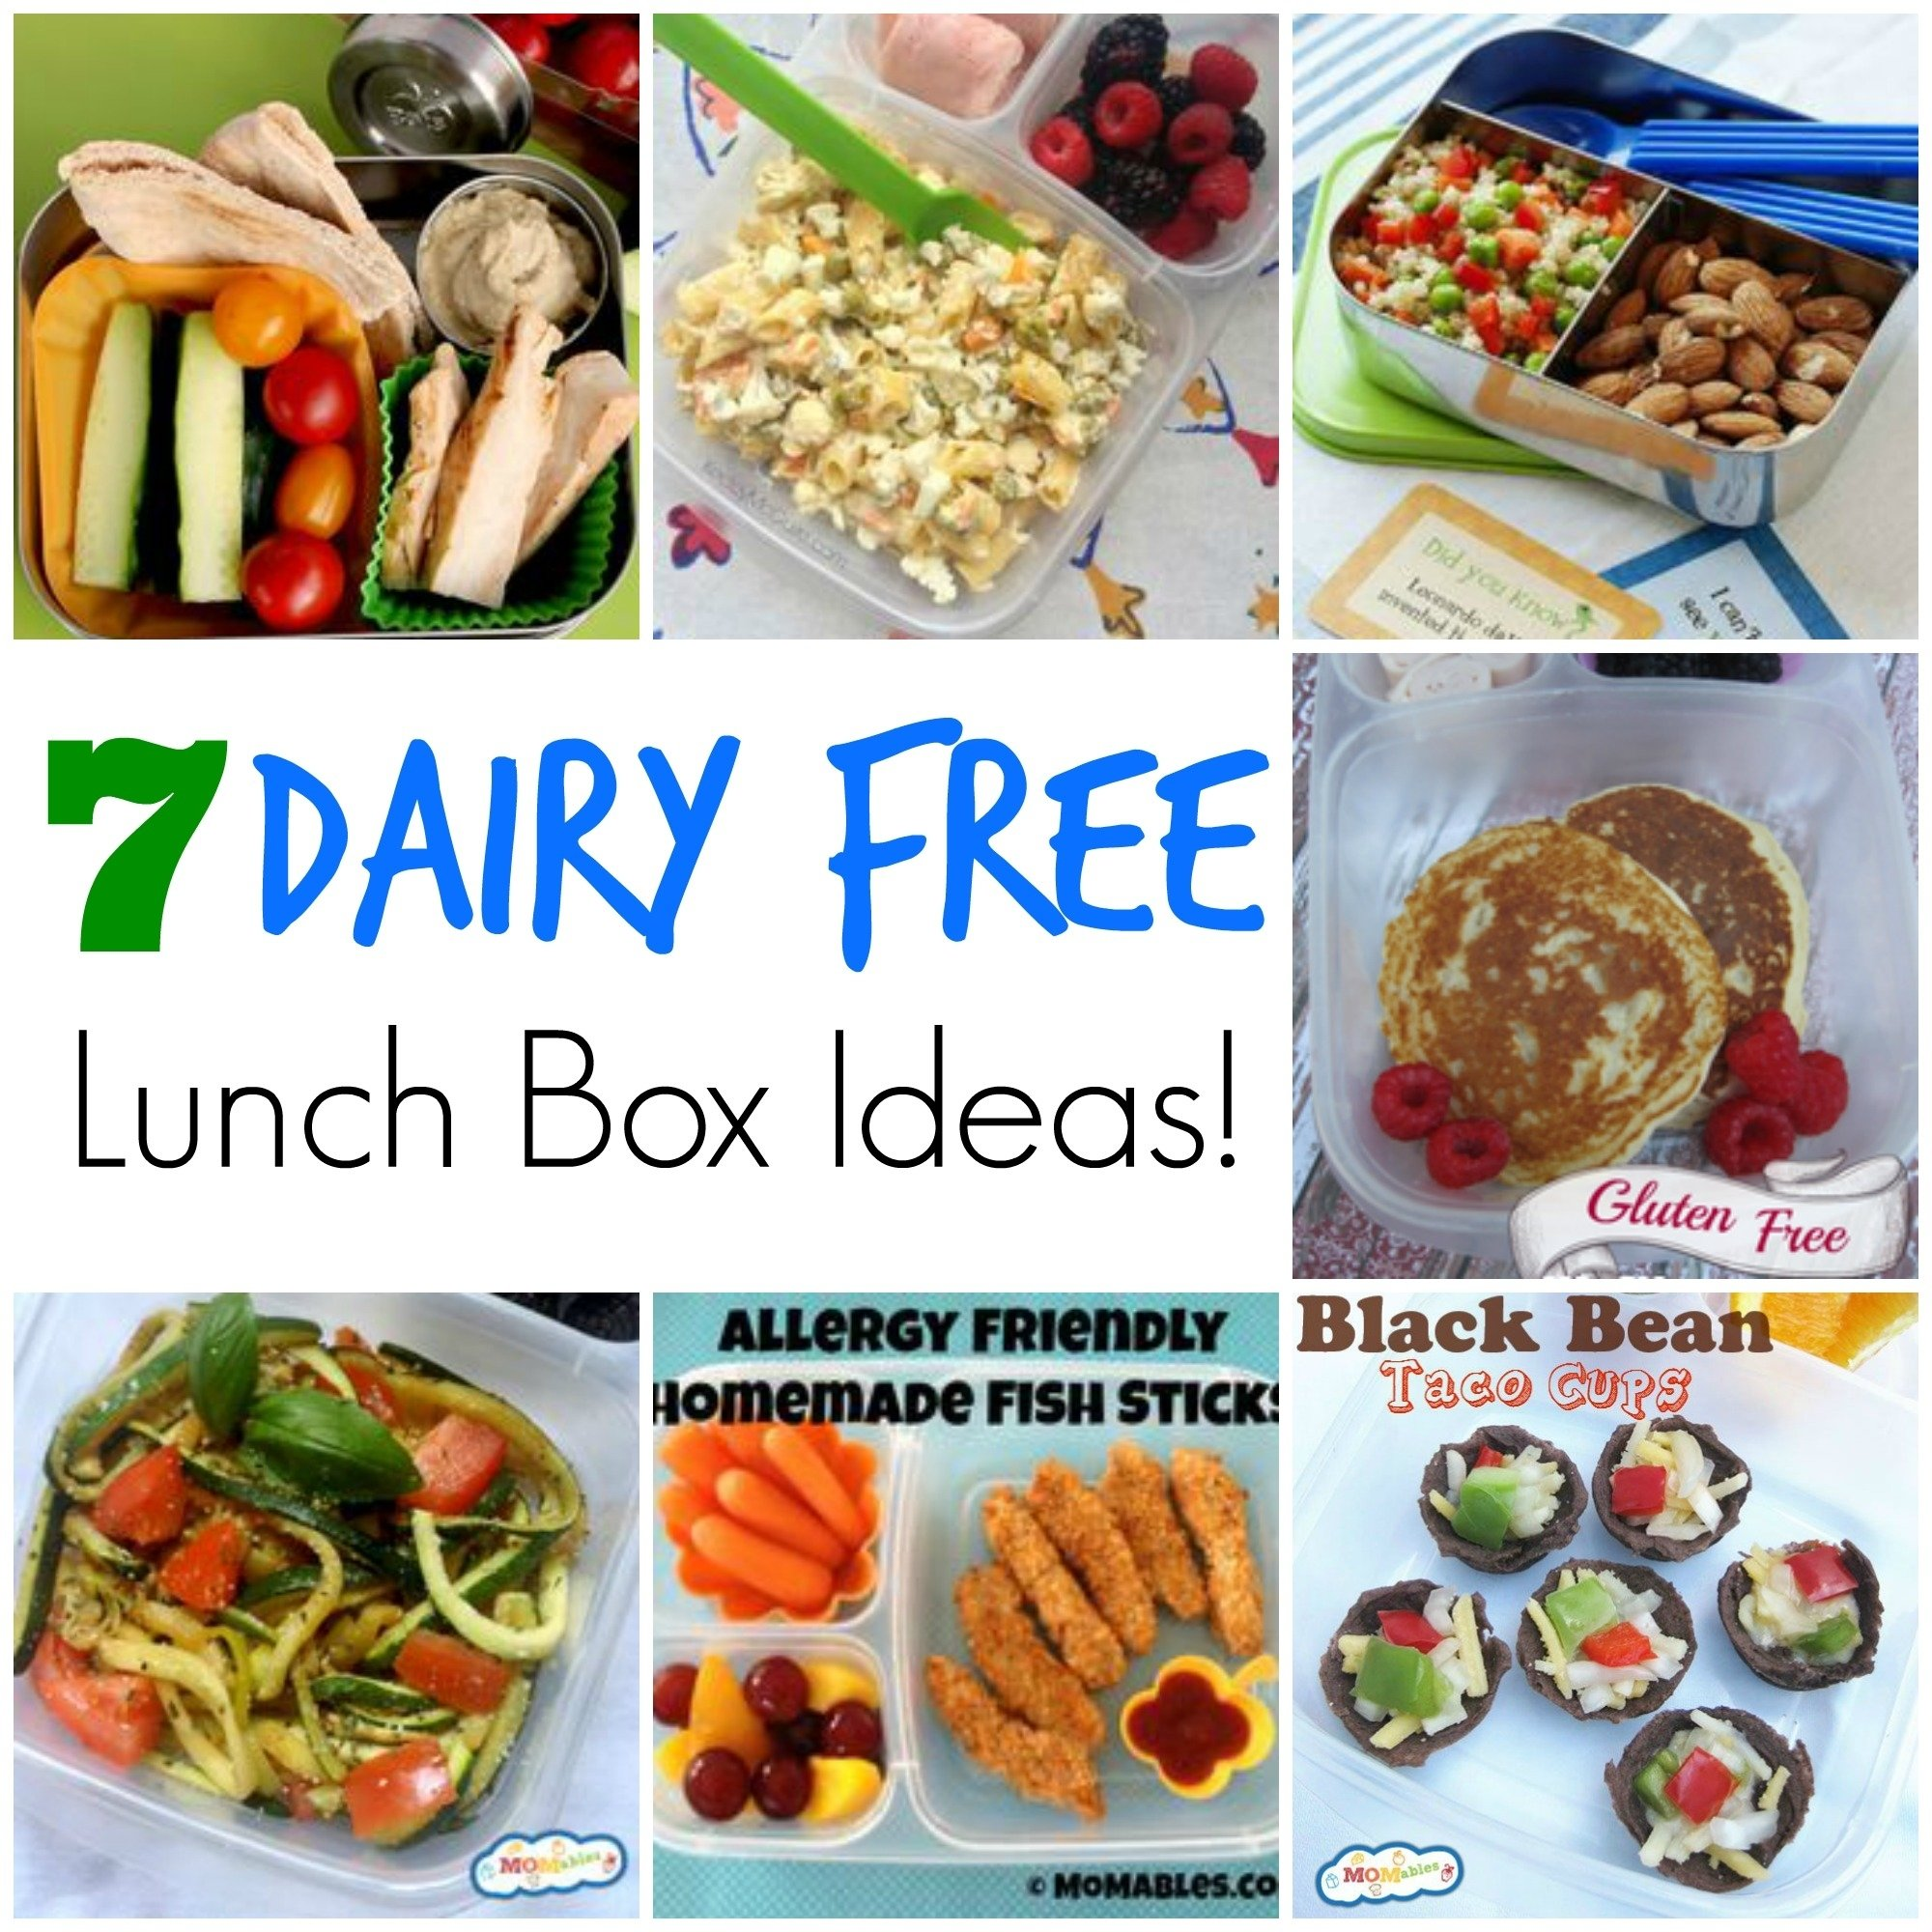 10 Cute Lunch Box Ideas For Picky Eaters 7 dairy free school lunch ideas 8